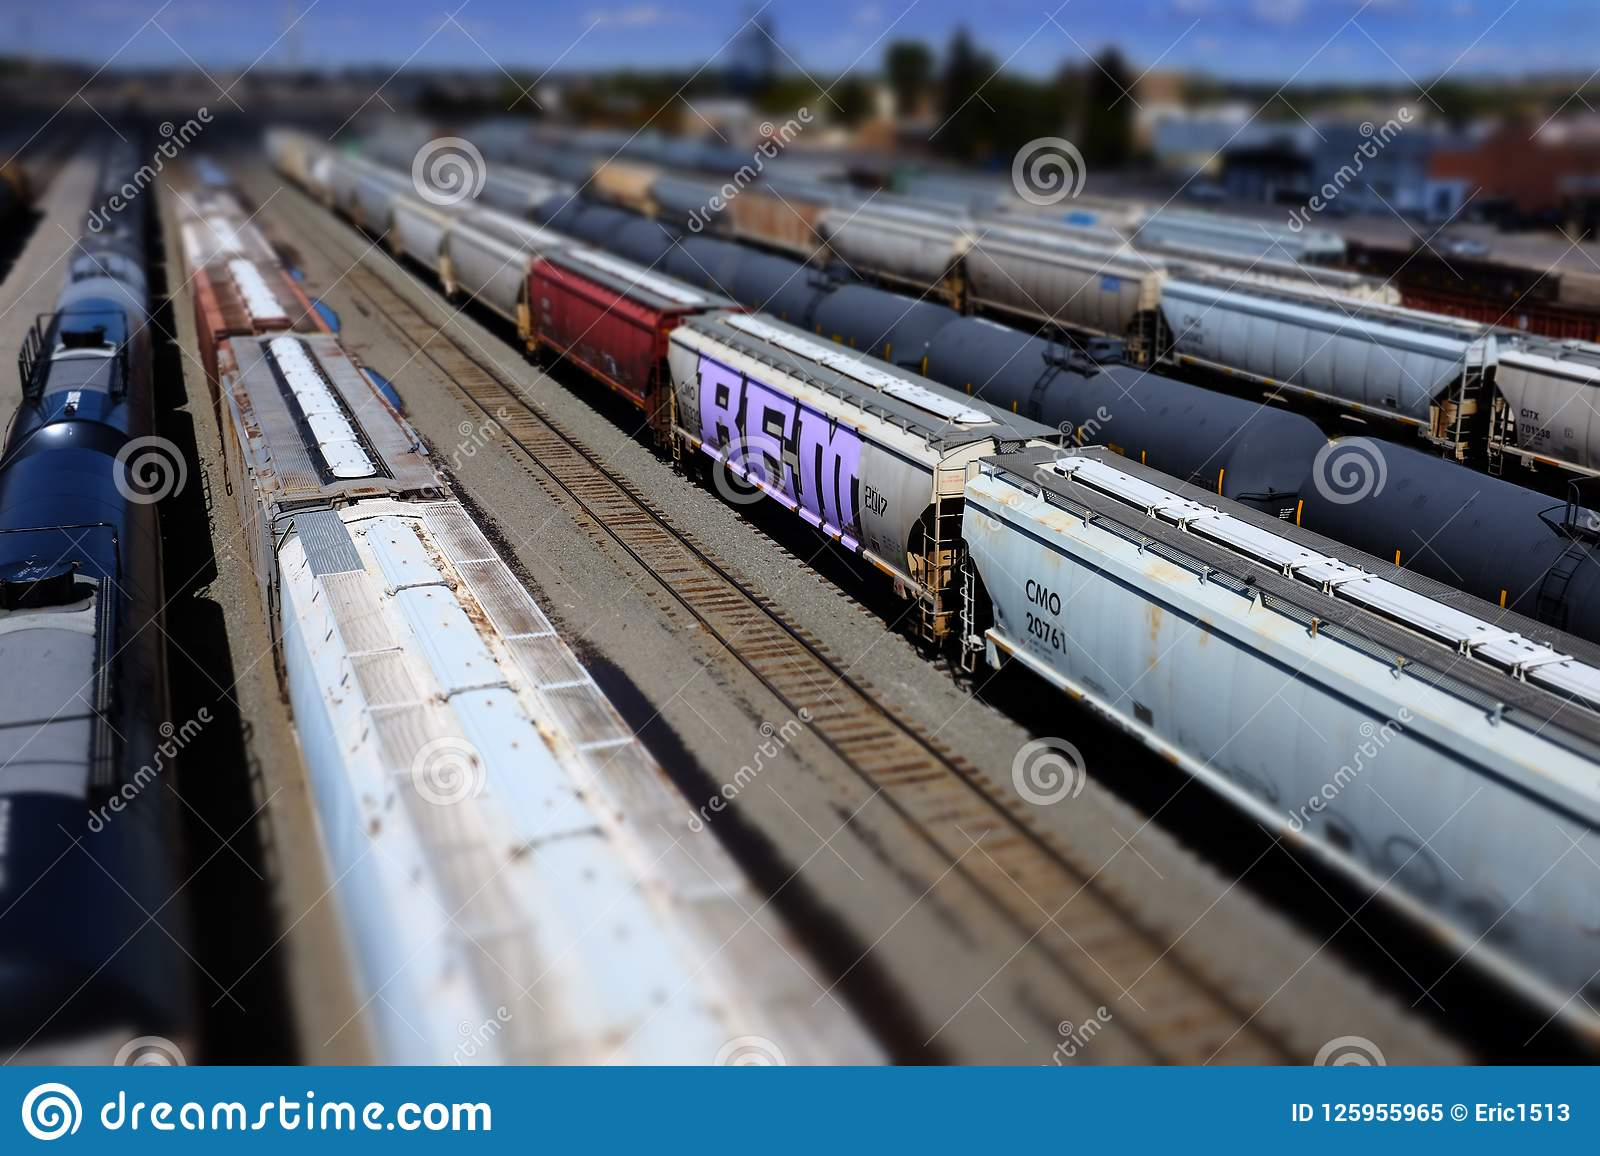 Railroad Tracks and Trains Cars in Miniature Mode Models Small T